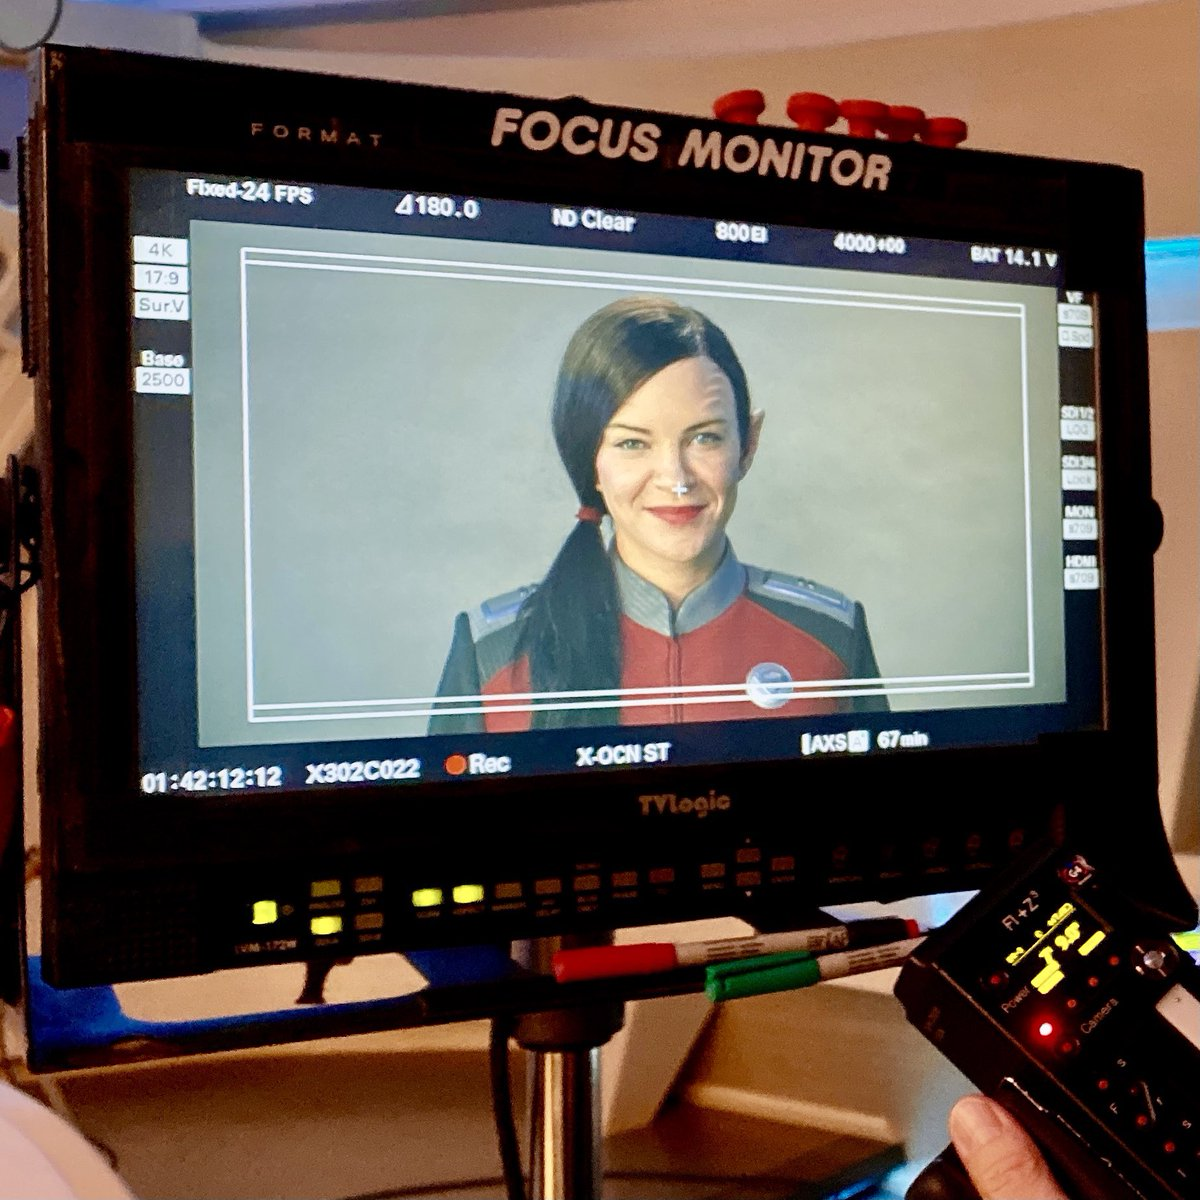 Hey @TheOrville gang, my @Twitter feed has been a misery pit this week, so here's some #S3 #TheOrville non-spoiler @jessicaszohr cheeriness to make up for it. @SethMacFarlane @planetary_union @hulu 👽💫🌎